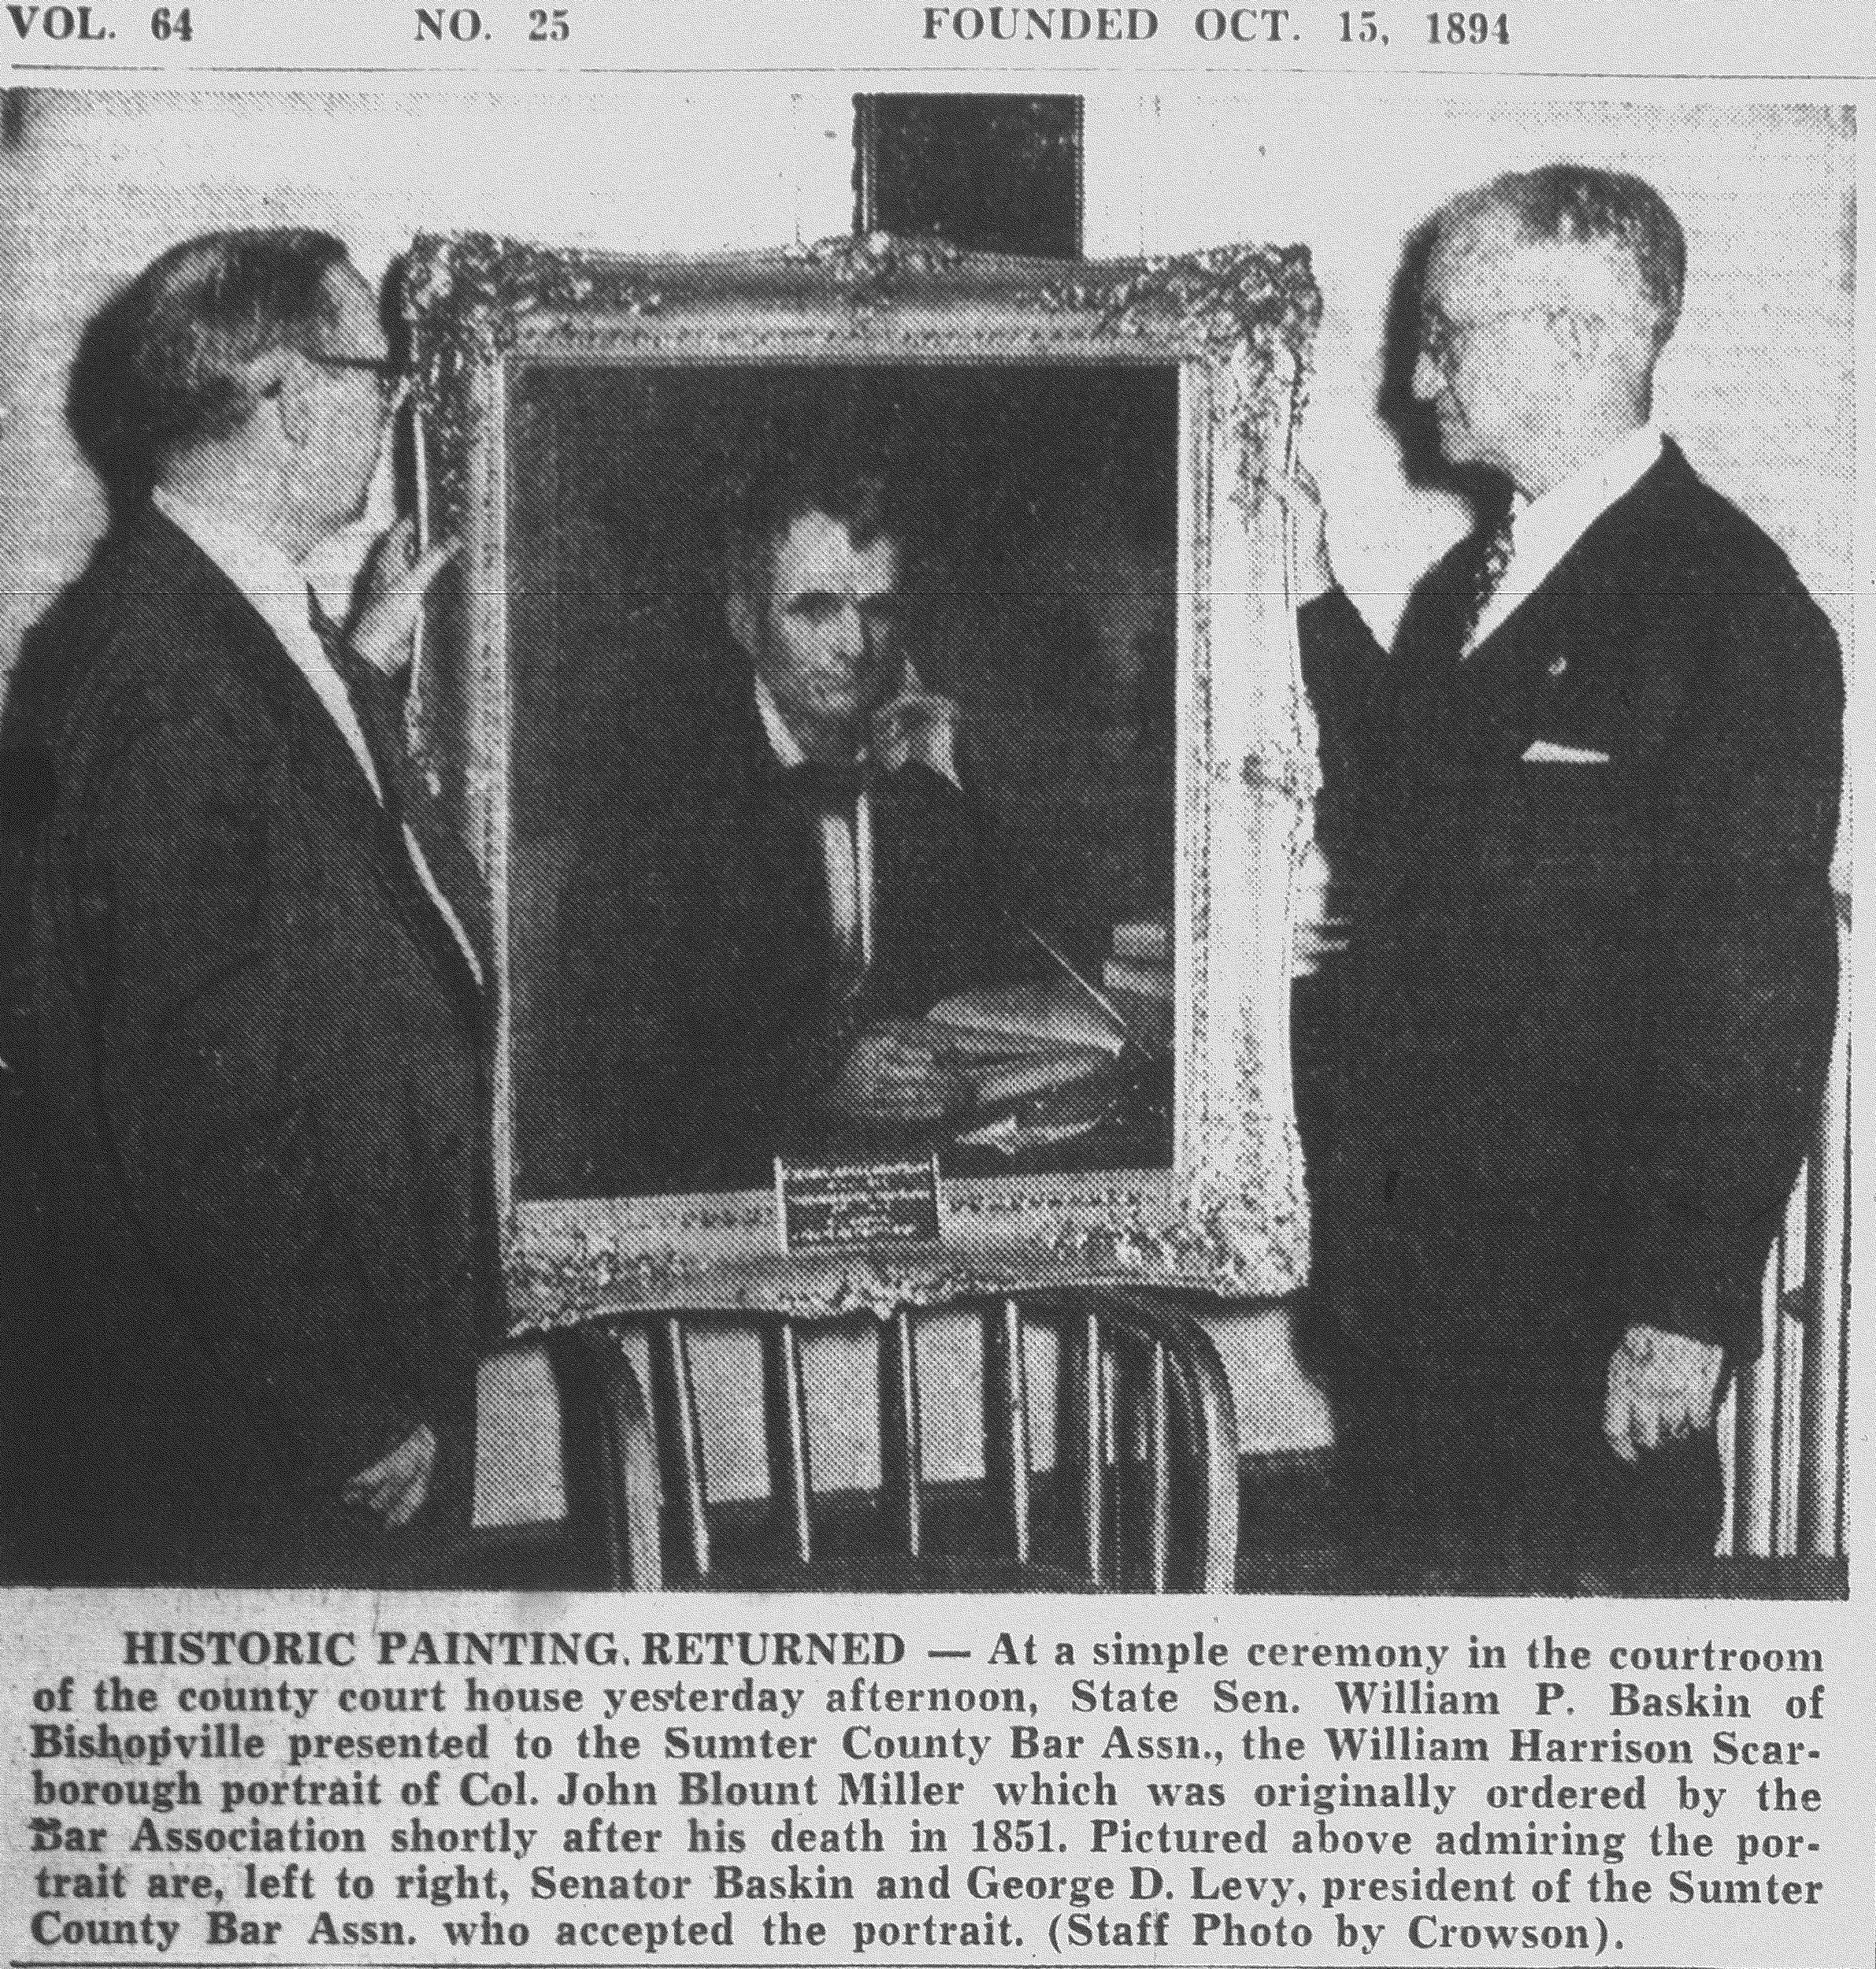 State Sen. William P. Baskin of Bishopville presented to the Sumter County Bar Association the William Harrison Scarborough portrait of Col. John Blount Miller, which was originally ordered by the Bar Association shortly after his death in 1851. Baskin and George D. Levy, president of the Sumter County Bar Association, are seen looking at the portrait. The Sumter Academy was started in 1837 on land donated by Miller.